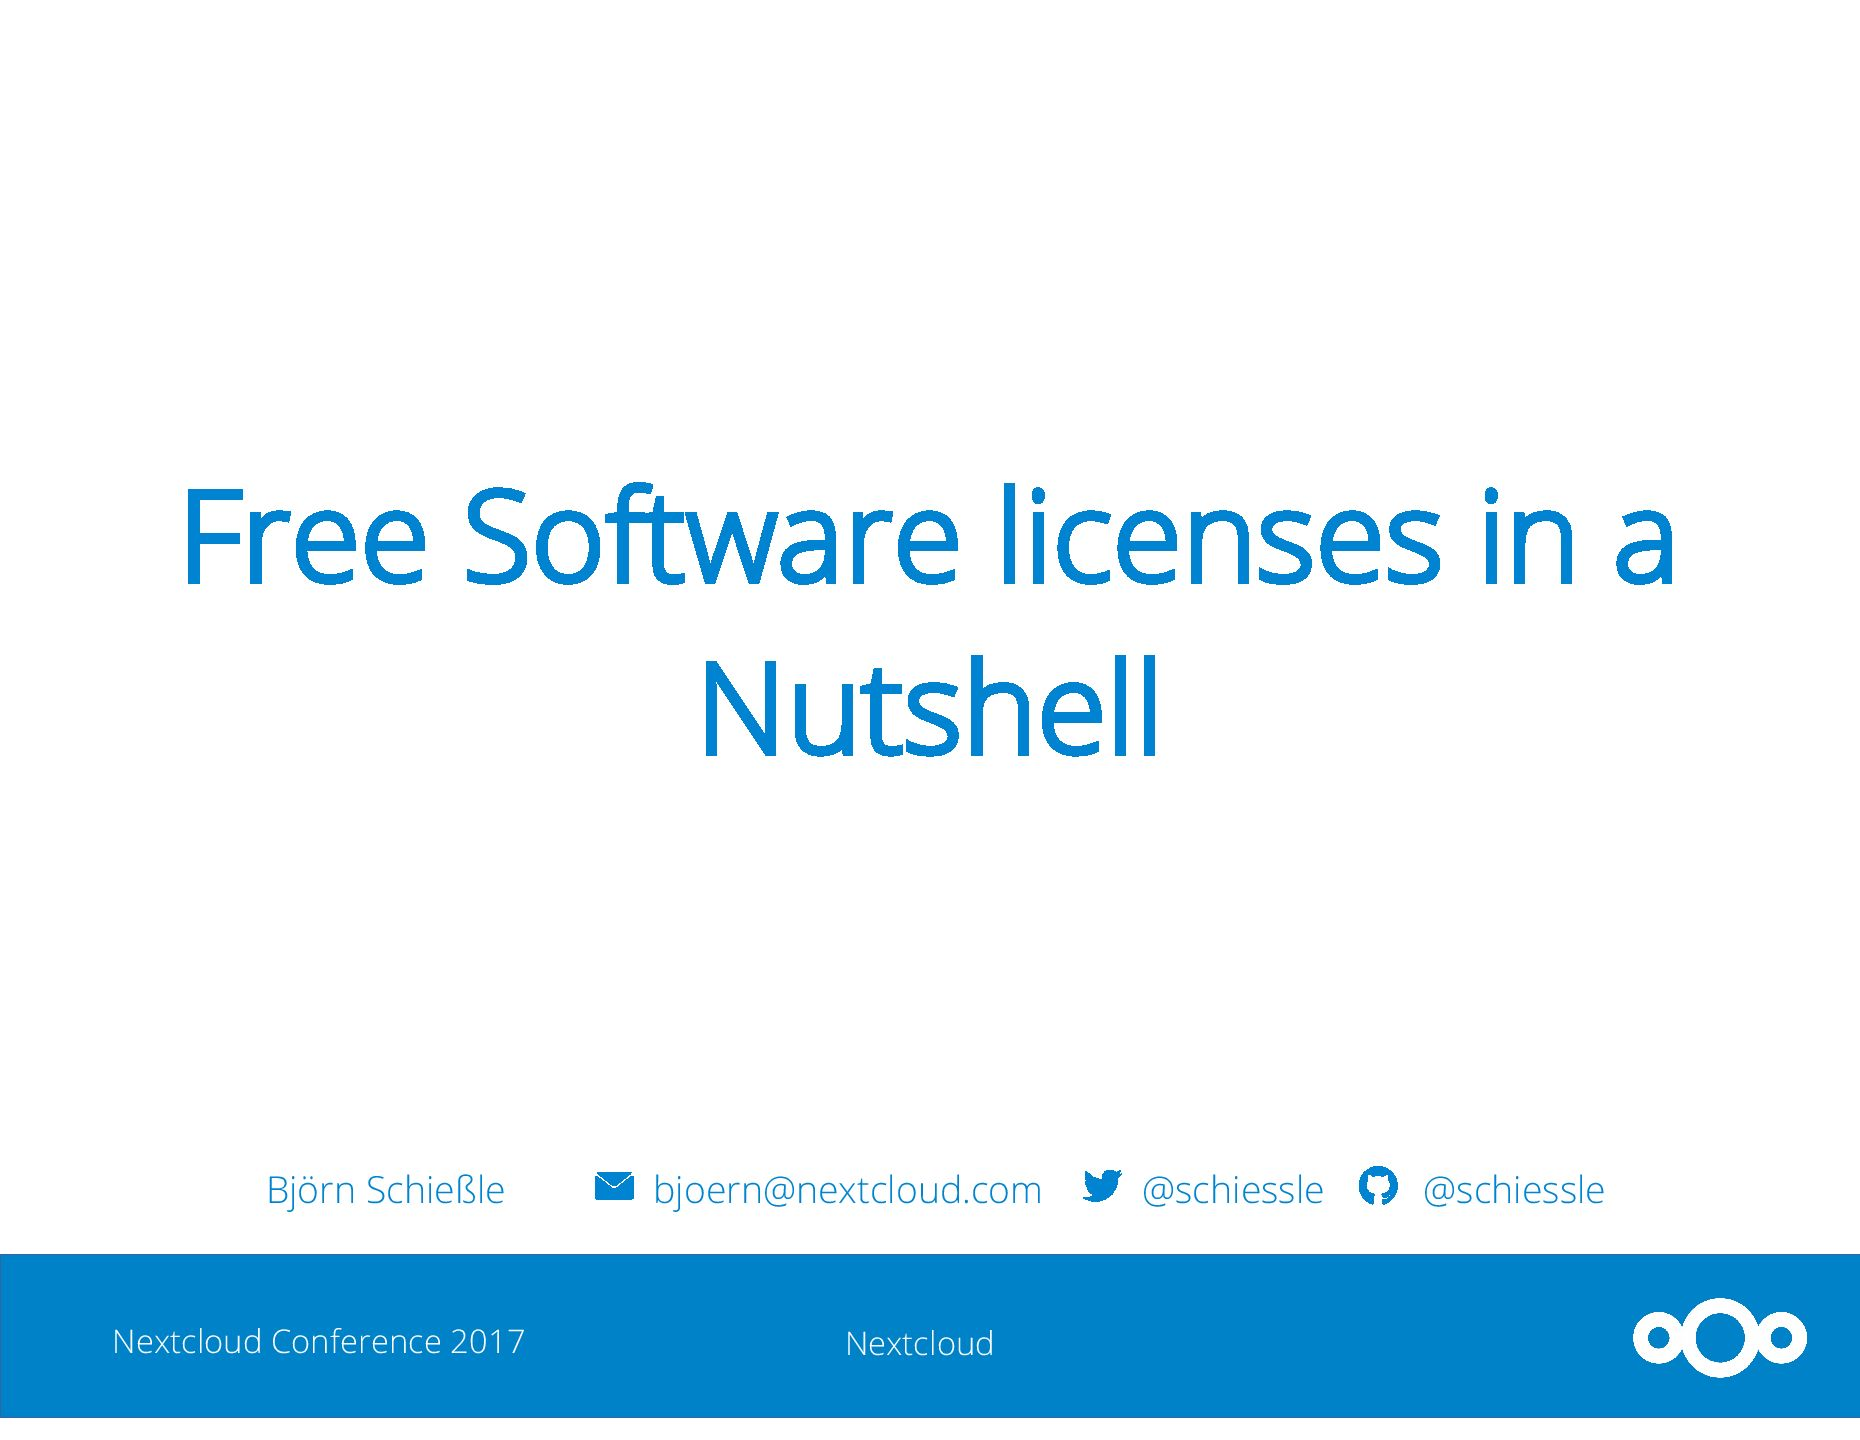 Nextcloud Conference 2017: Free Software licenses in a Nutshell